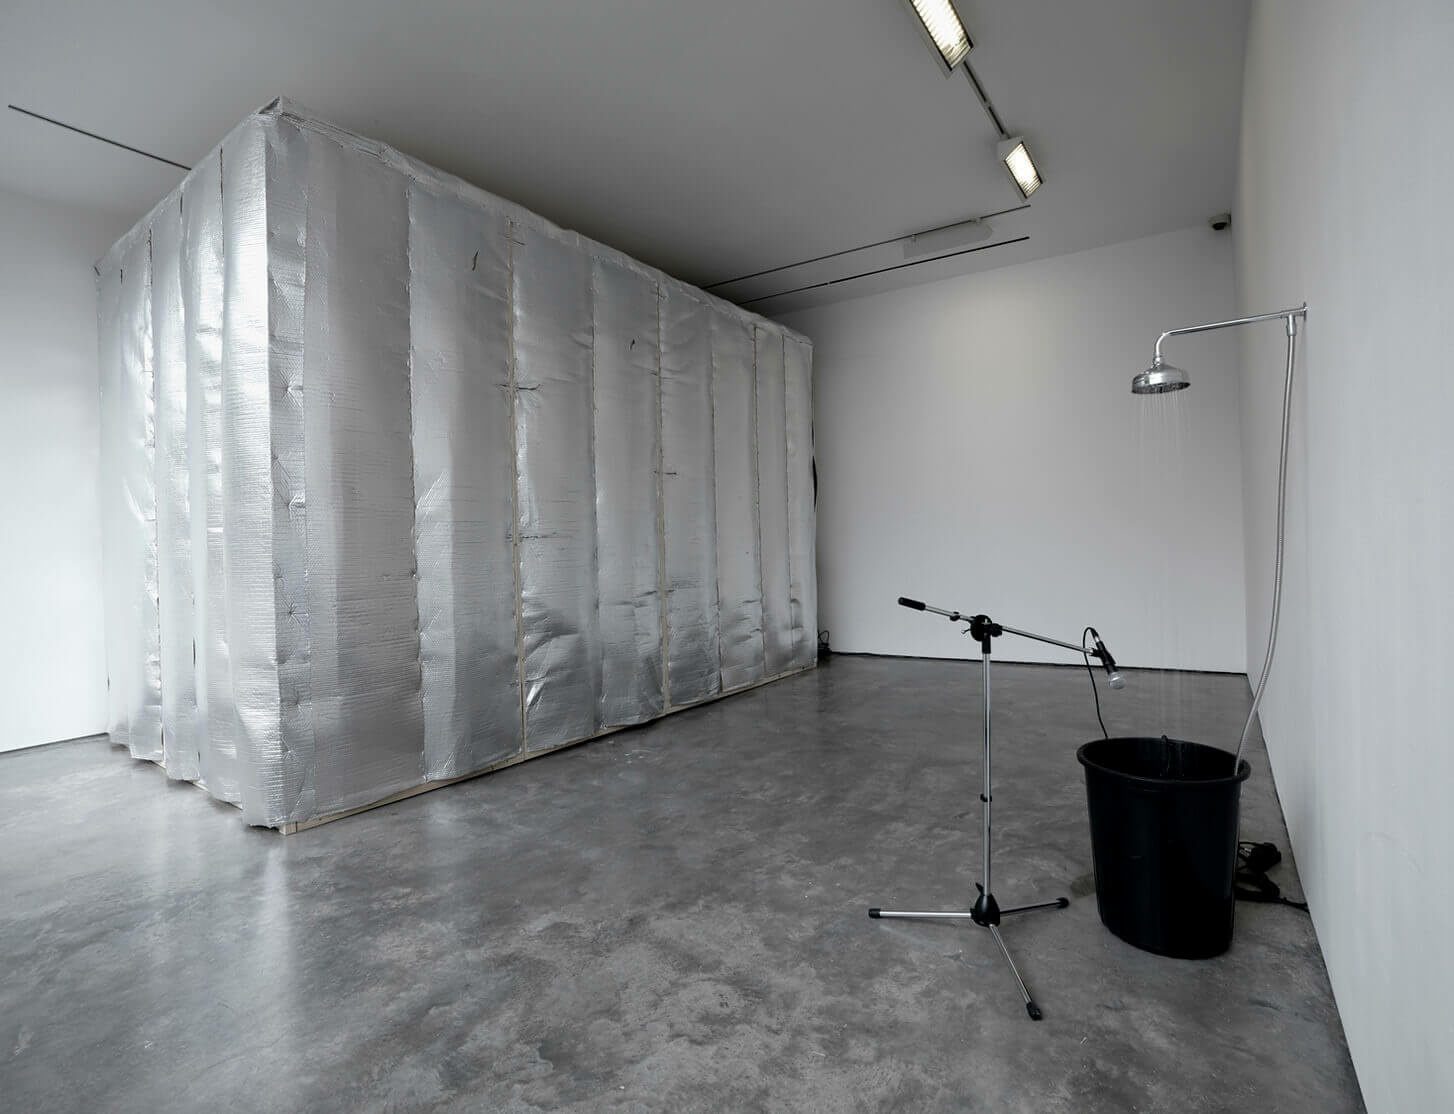 Solo exhibition by Haroon Mirza opens at ACCA Melbourne